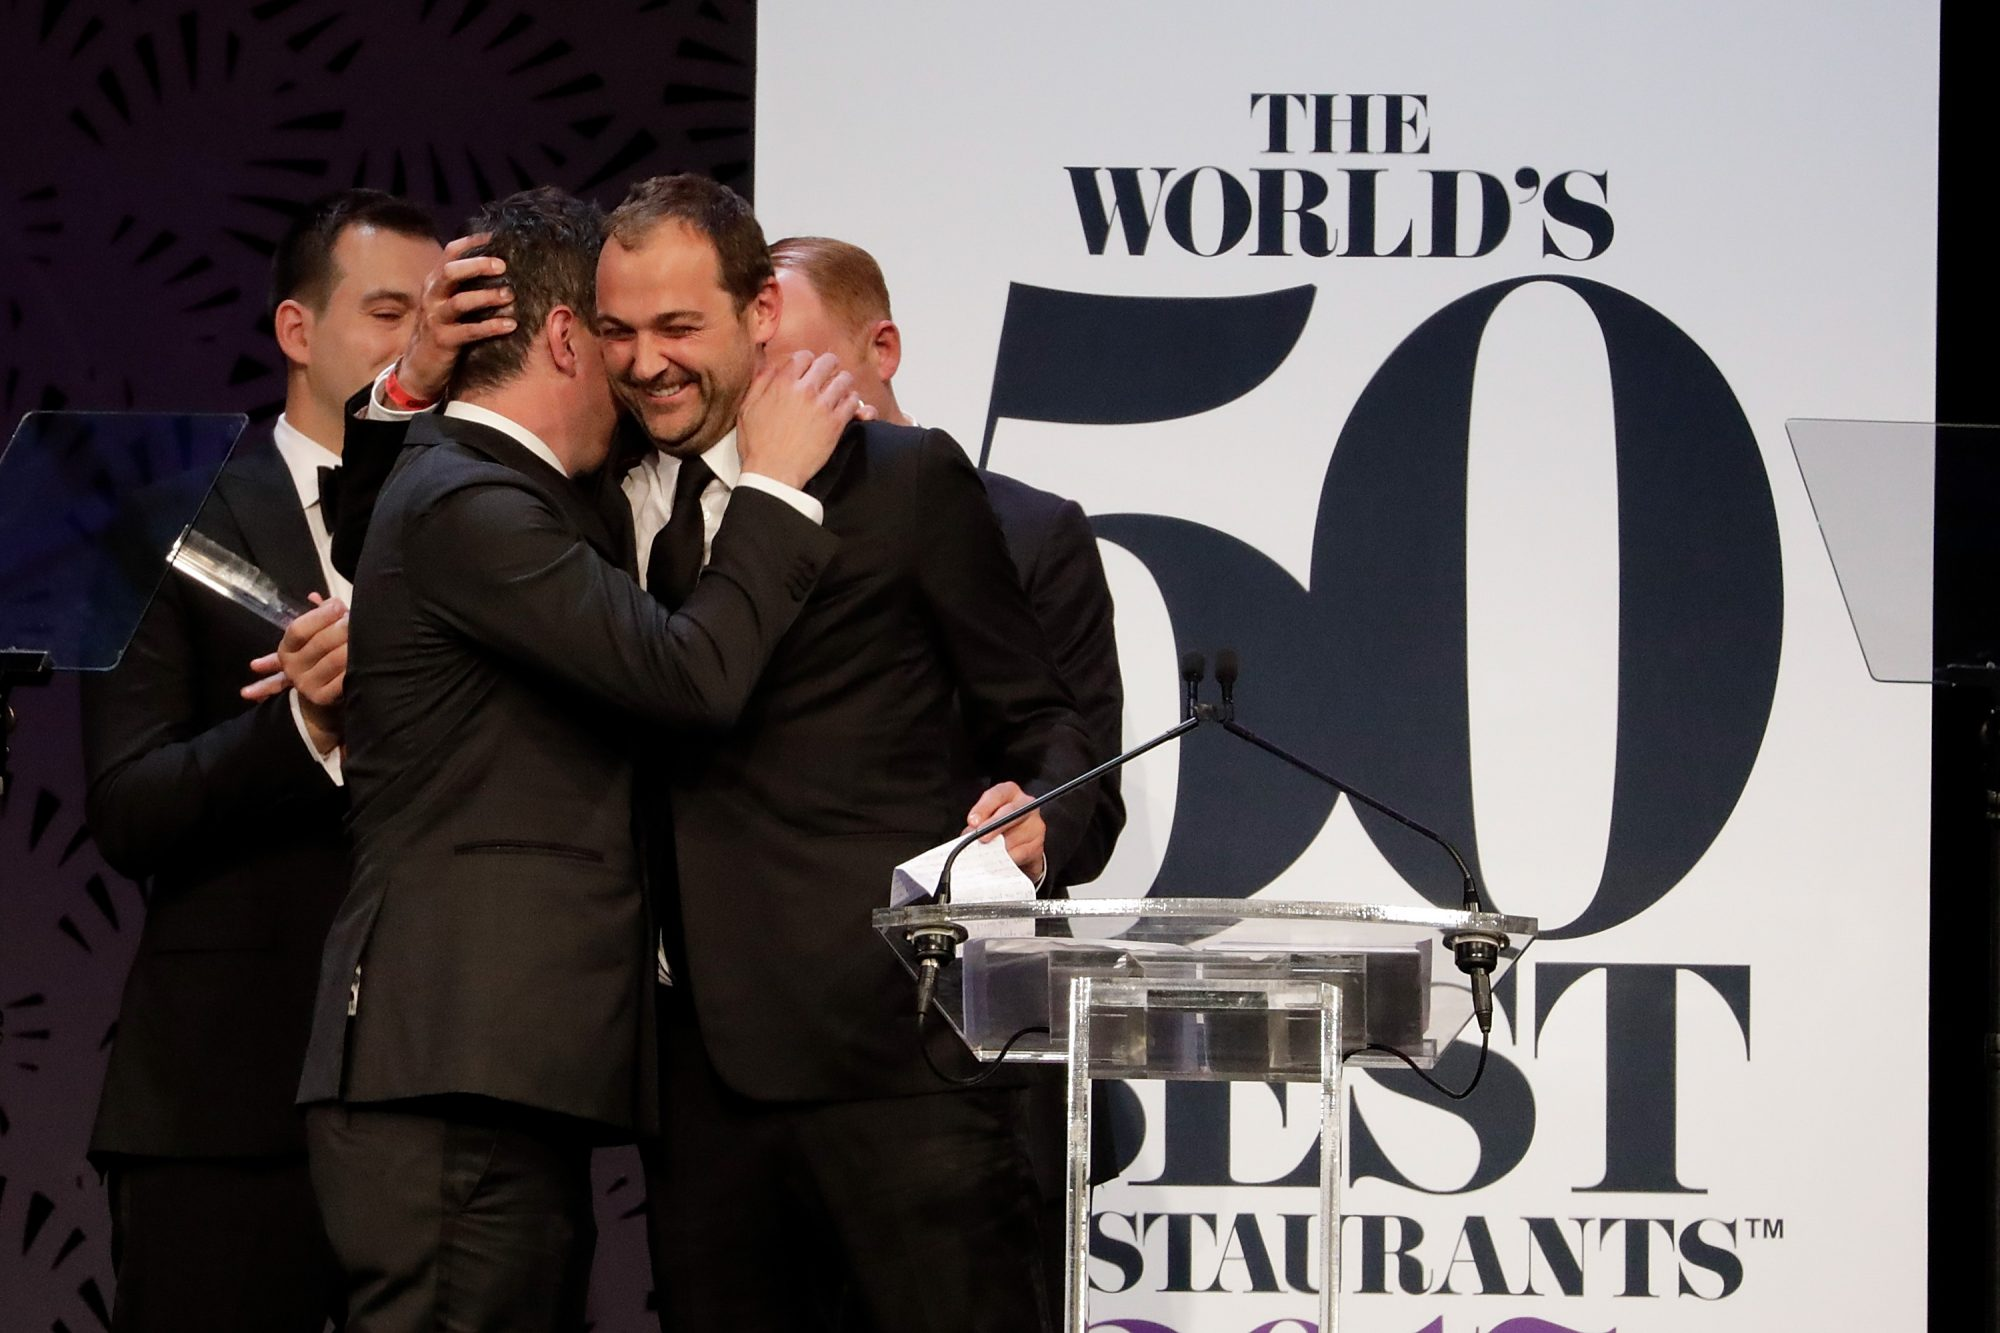 'World's 50 Best Restaurants' Says Previous Winners Are No Longer Eligible for Future Lists